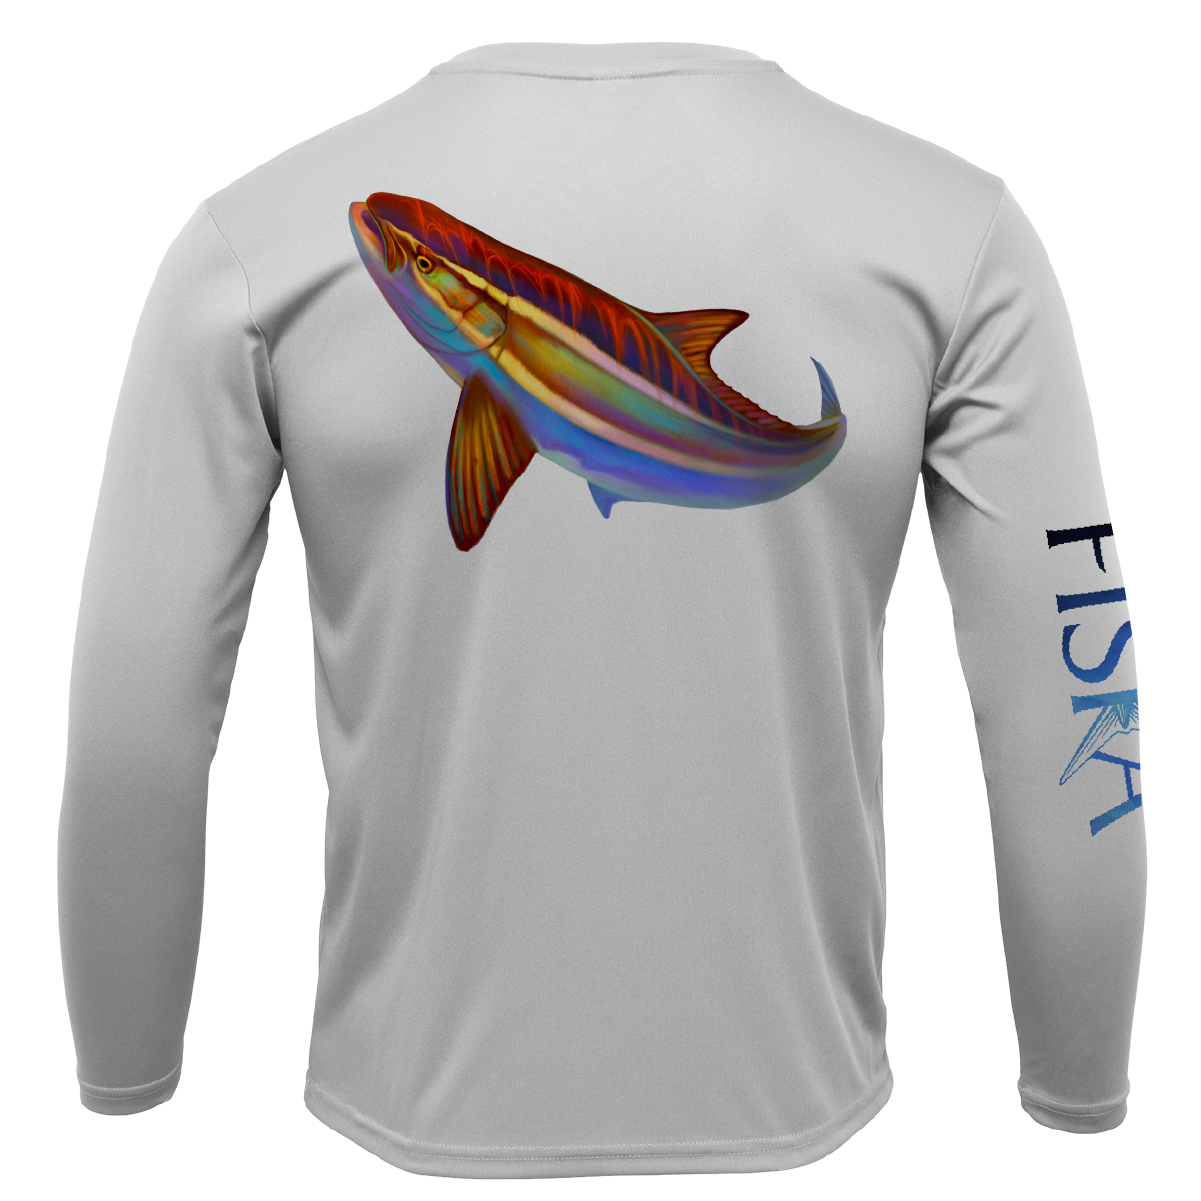 Cobia Long-Sleeve Dry-Fit Shirt